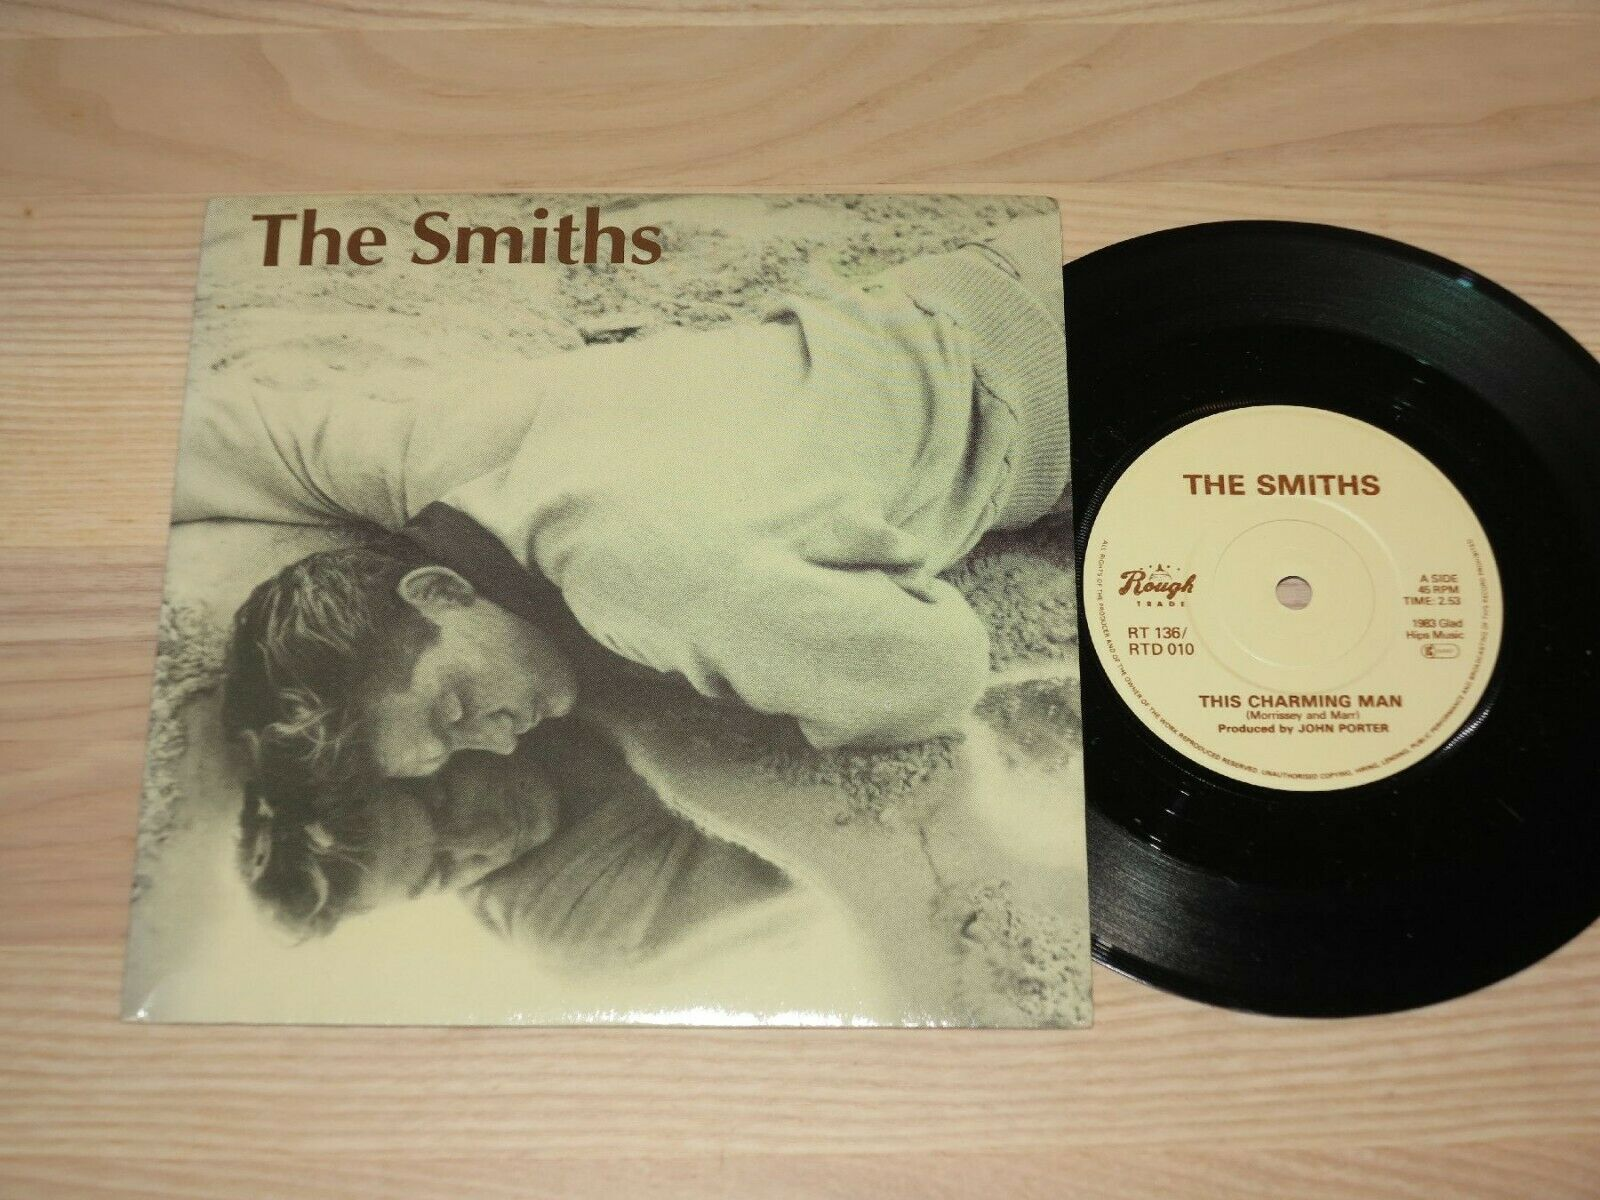 "THE SMITHS 7"" SINGLE - THIS CHARMING MAN / RT 136 RTD 010 NO PUSH OUT in MINT"